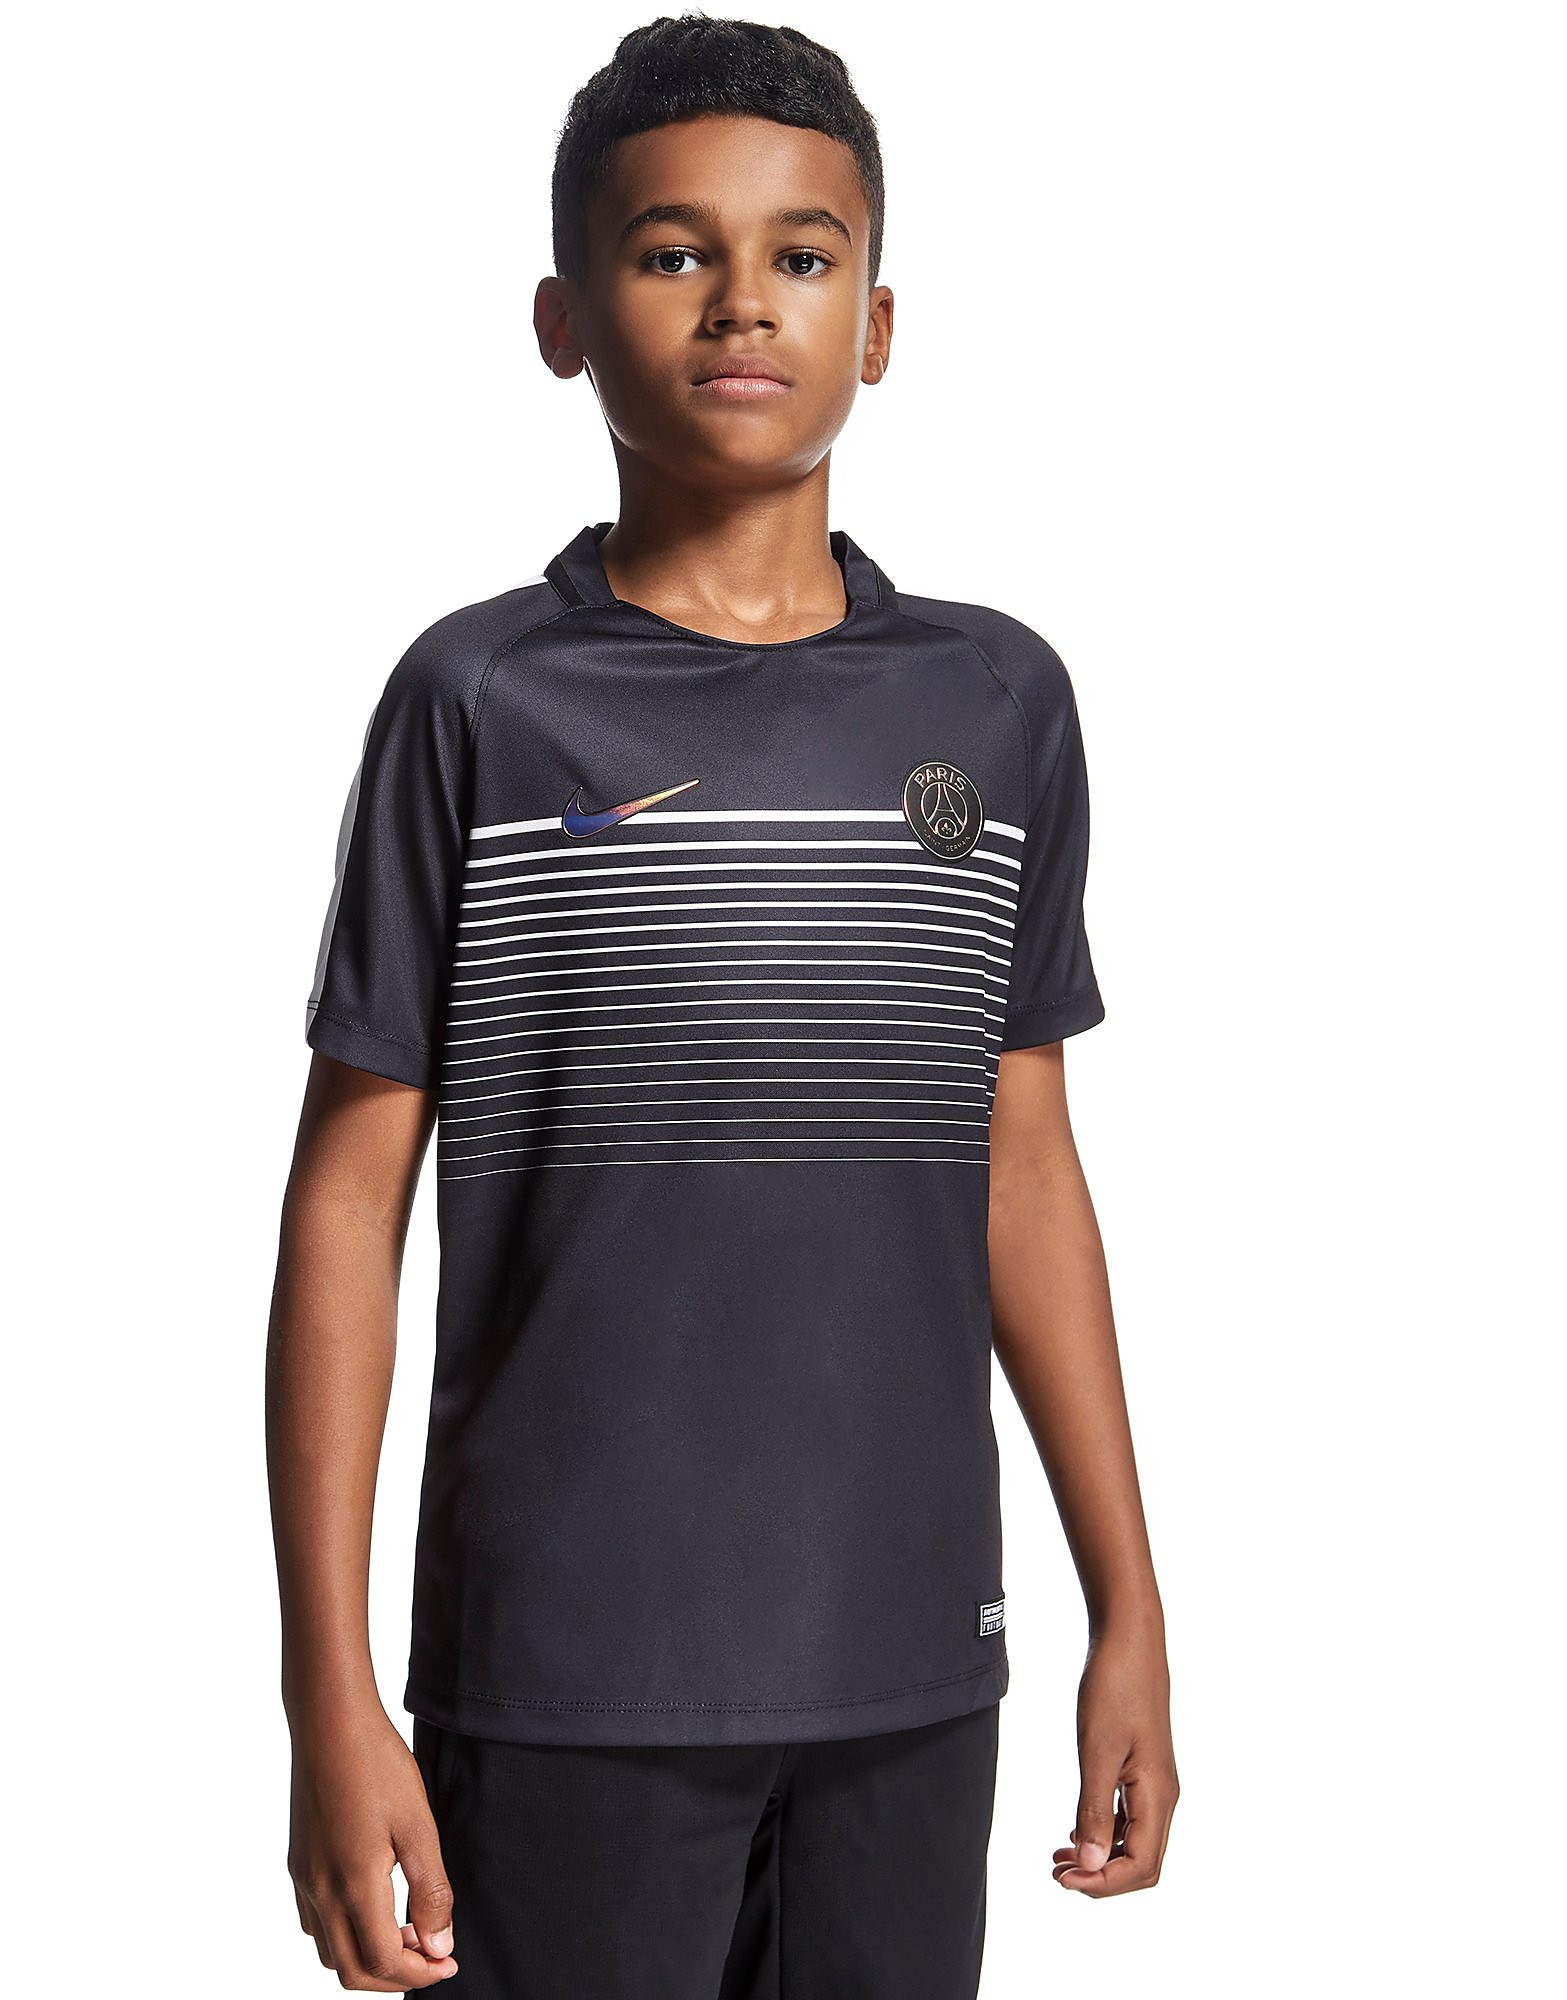 Nike Paris Saint Germain 2016/17 Training Top Junior